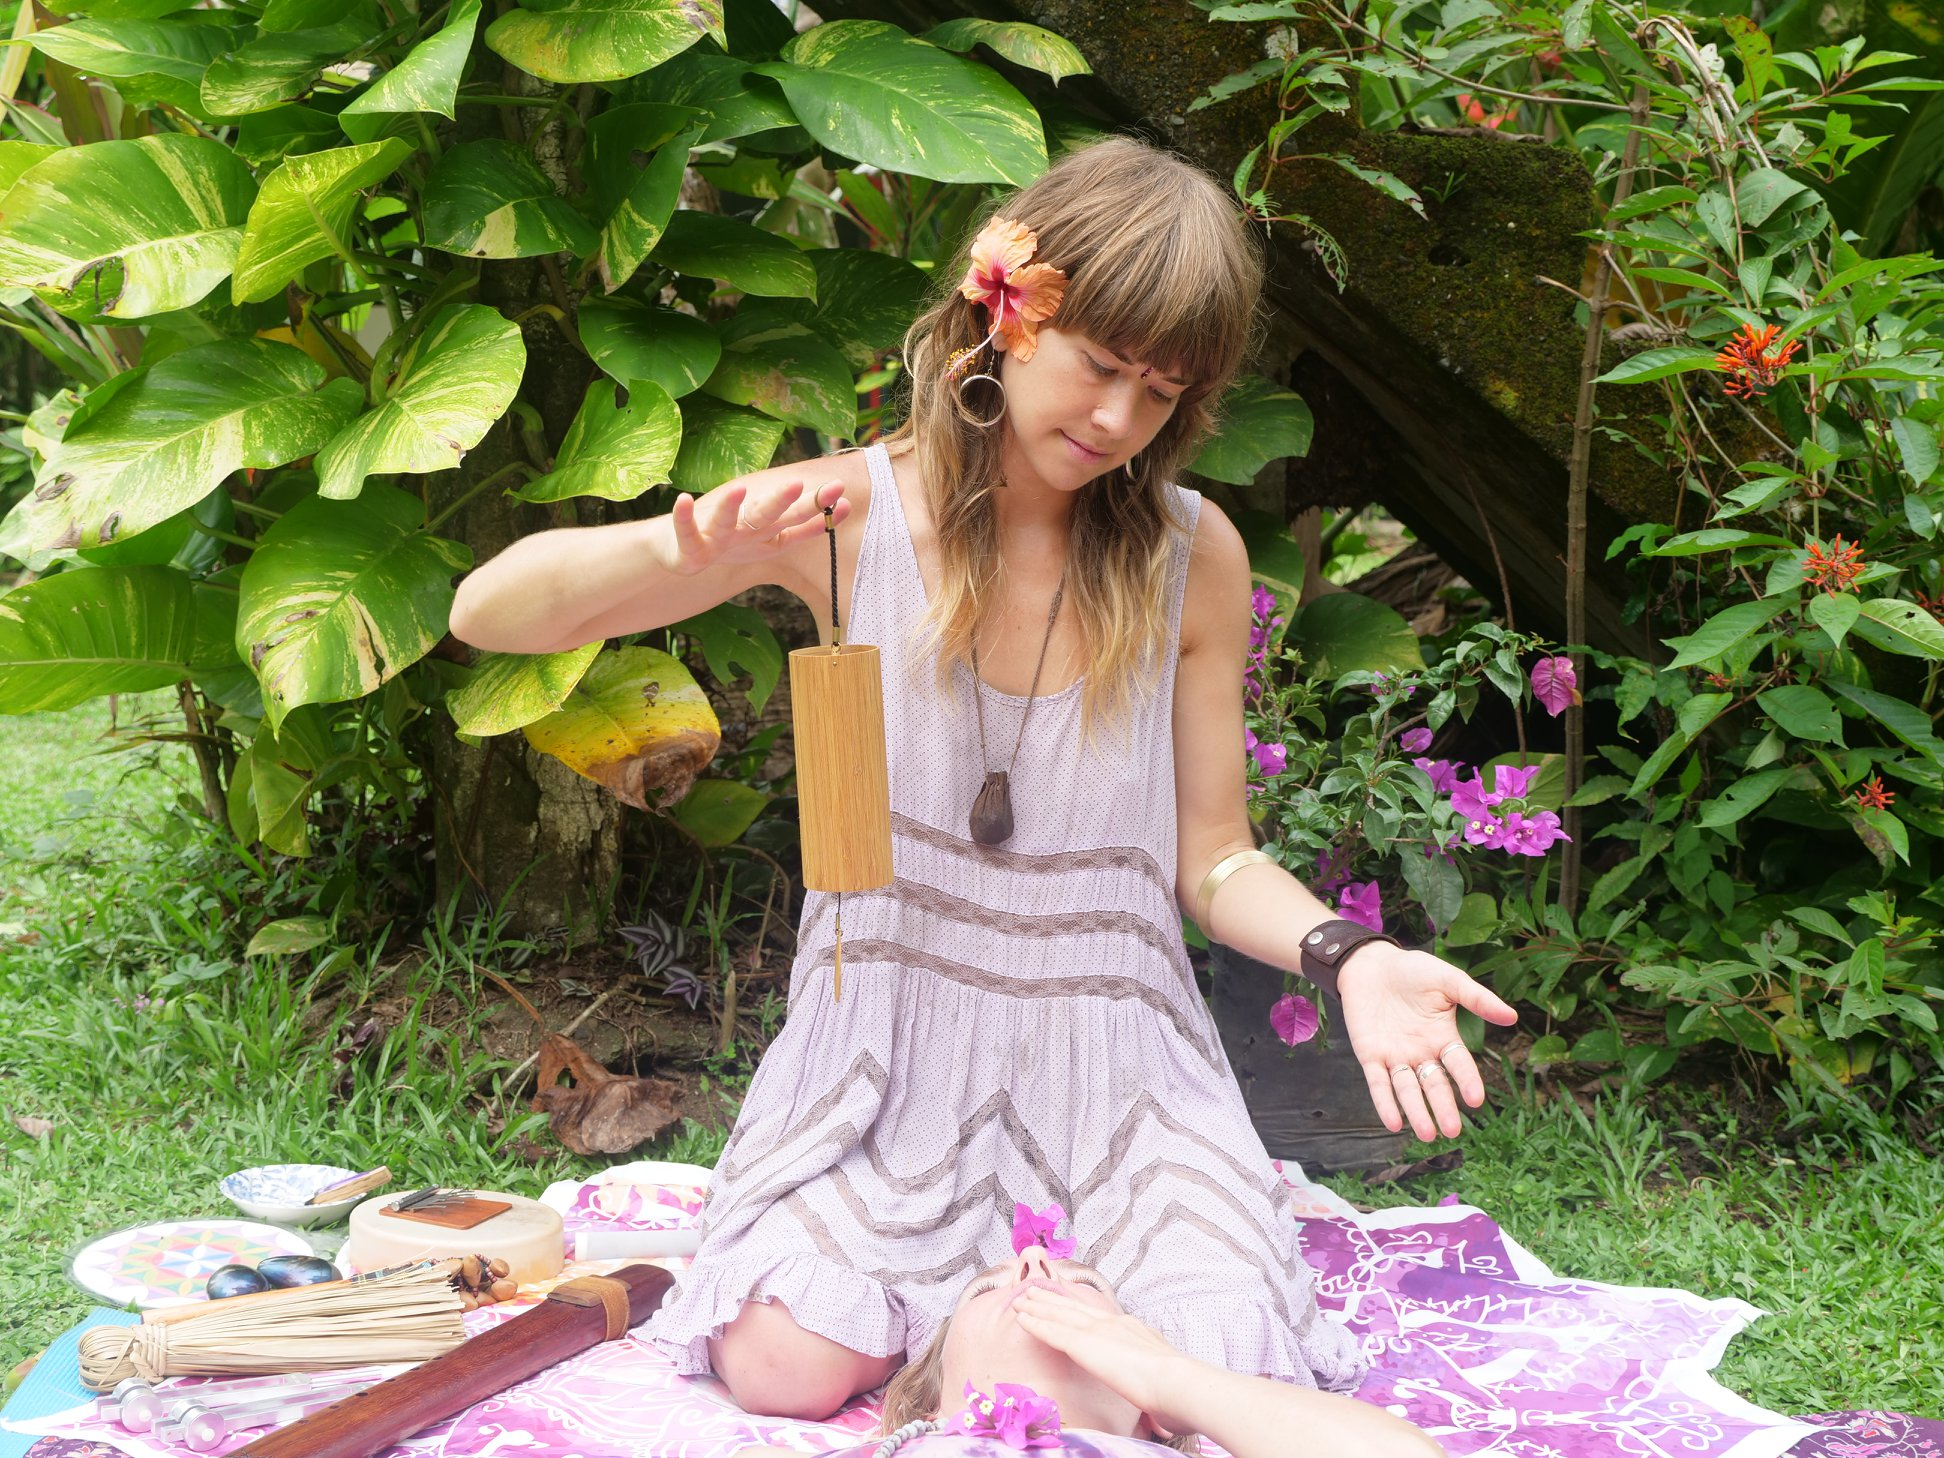 Astaria Light - Forest Fairy, Light Keeper, Singer, Sound Healer, Protector of this Earth. Founder of Light of Sound